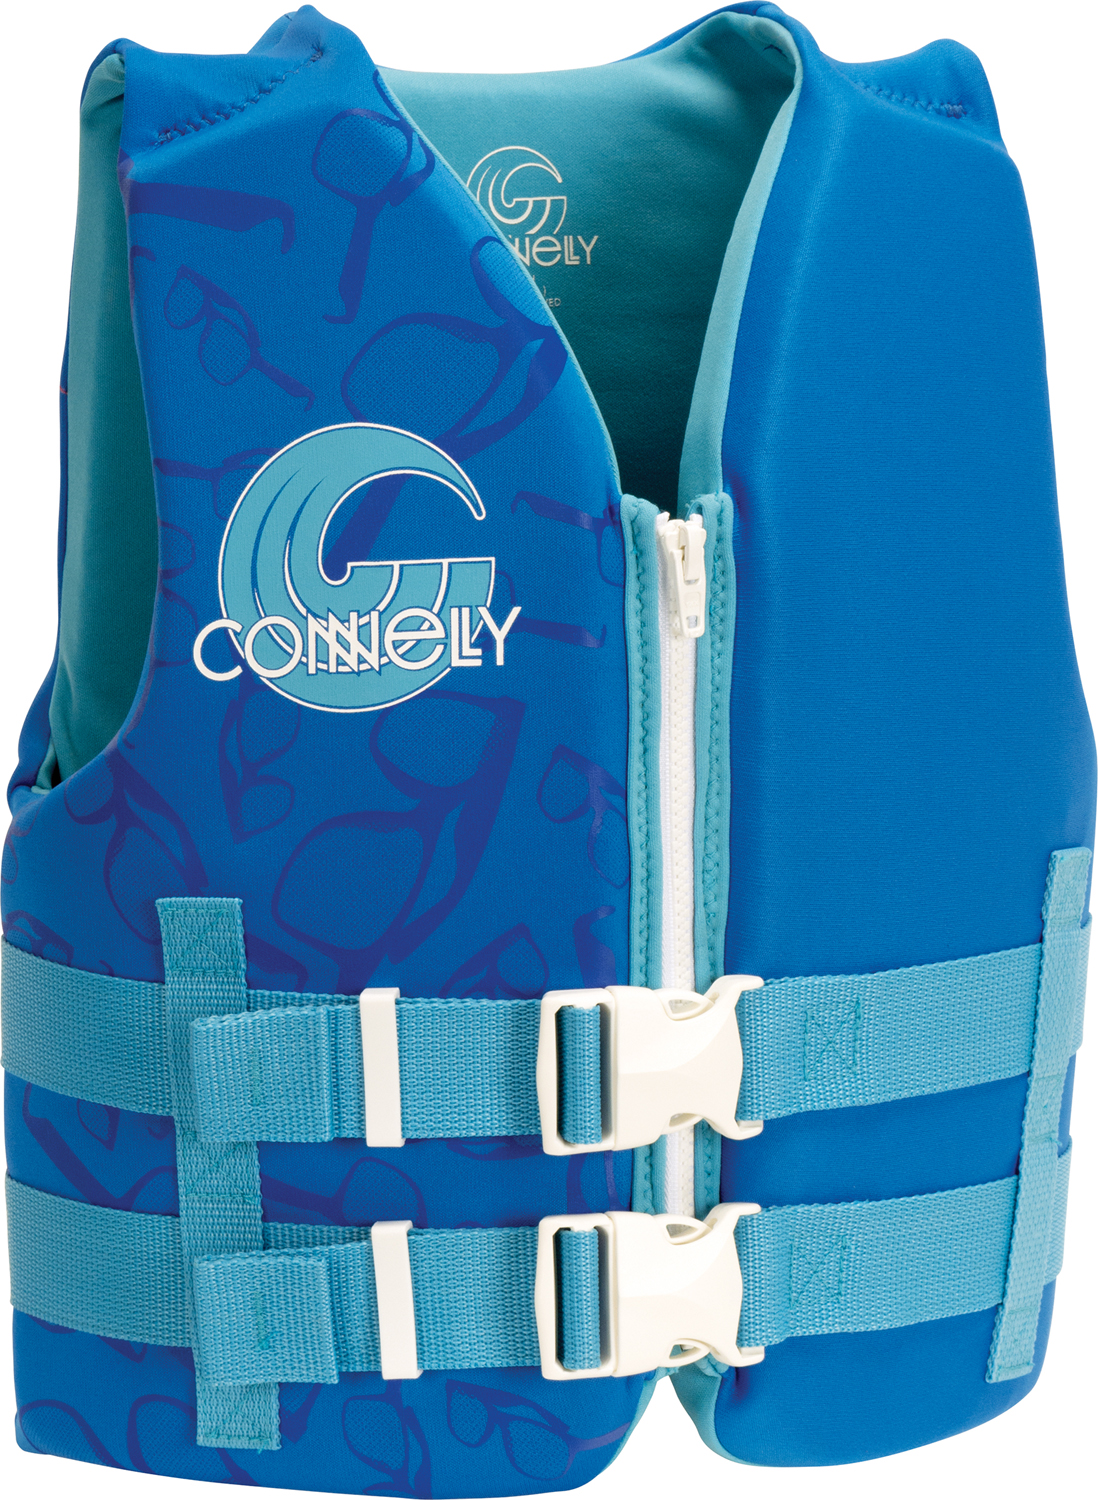 Connelly Boys Promo Youth Neo Life Vest 2019 Discount